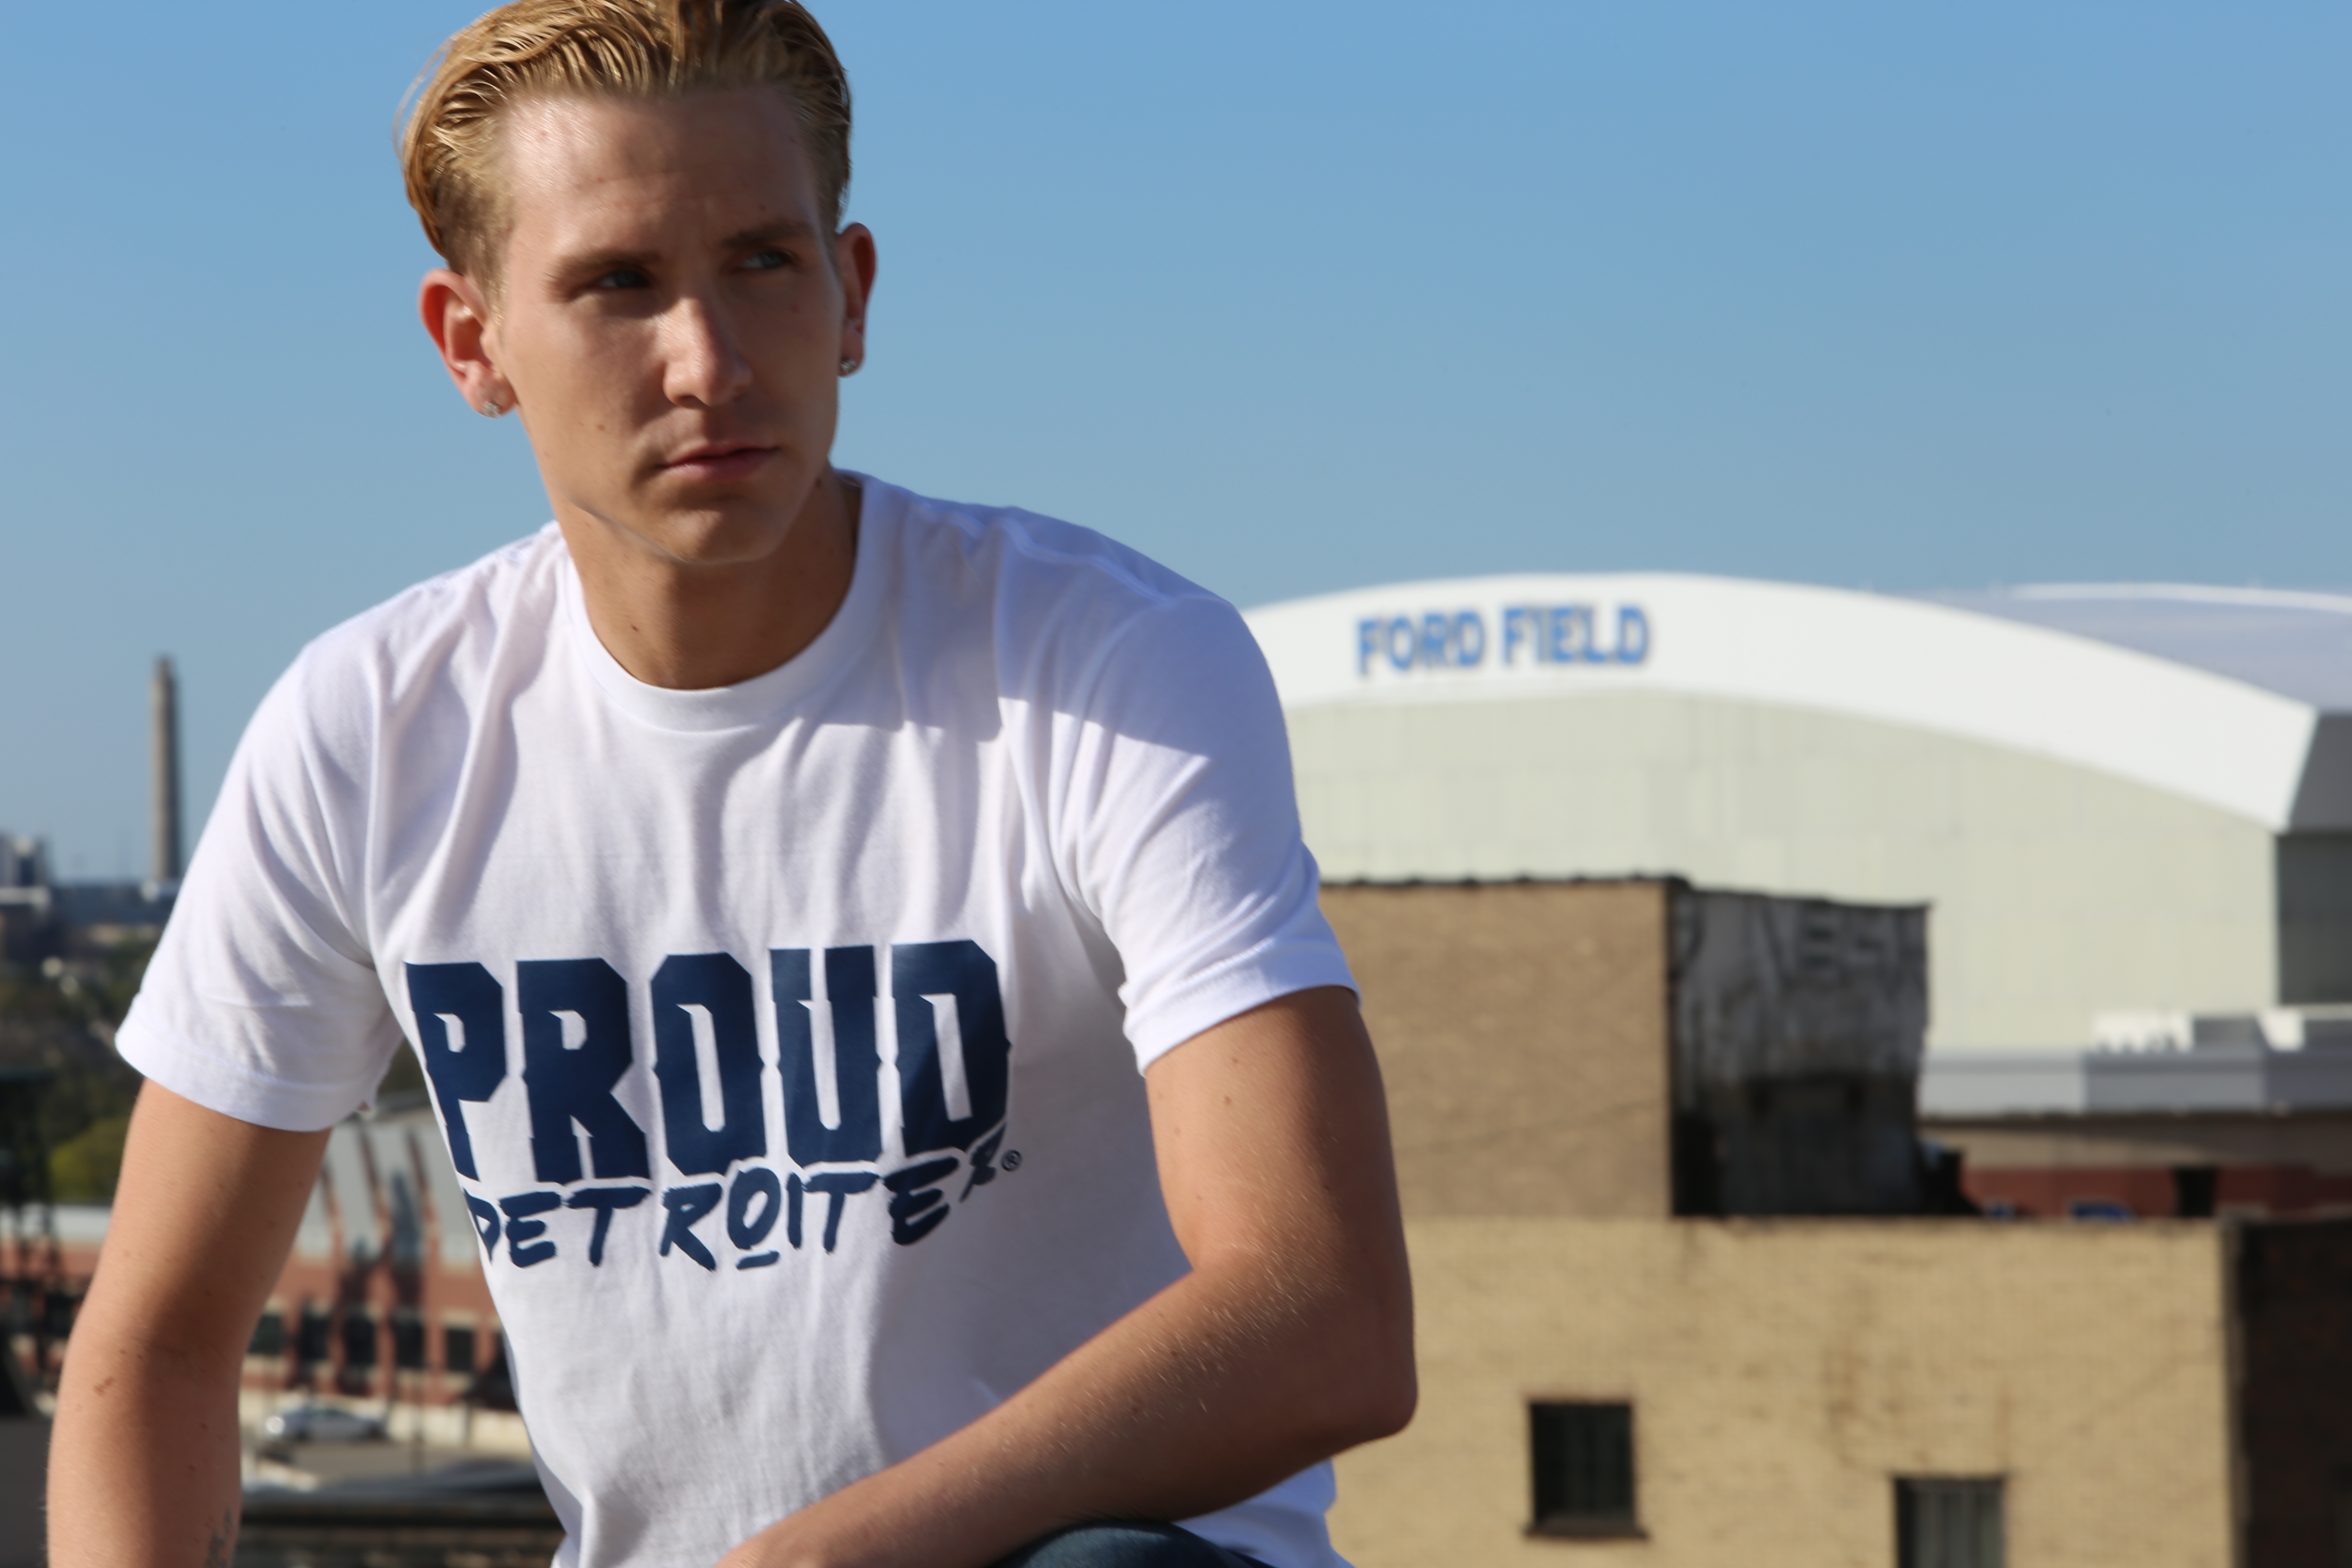 Proud Detroiter T Shirt Ford Field